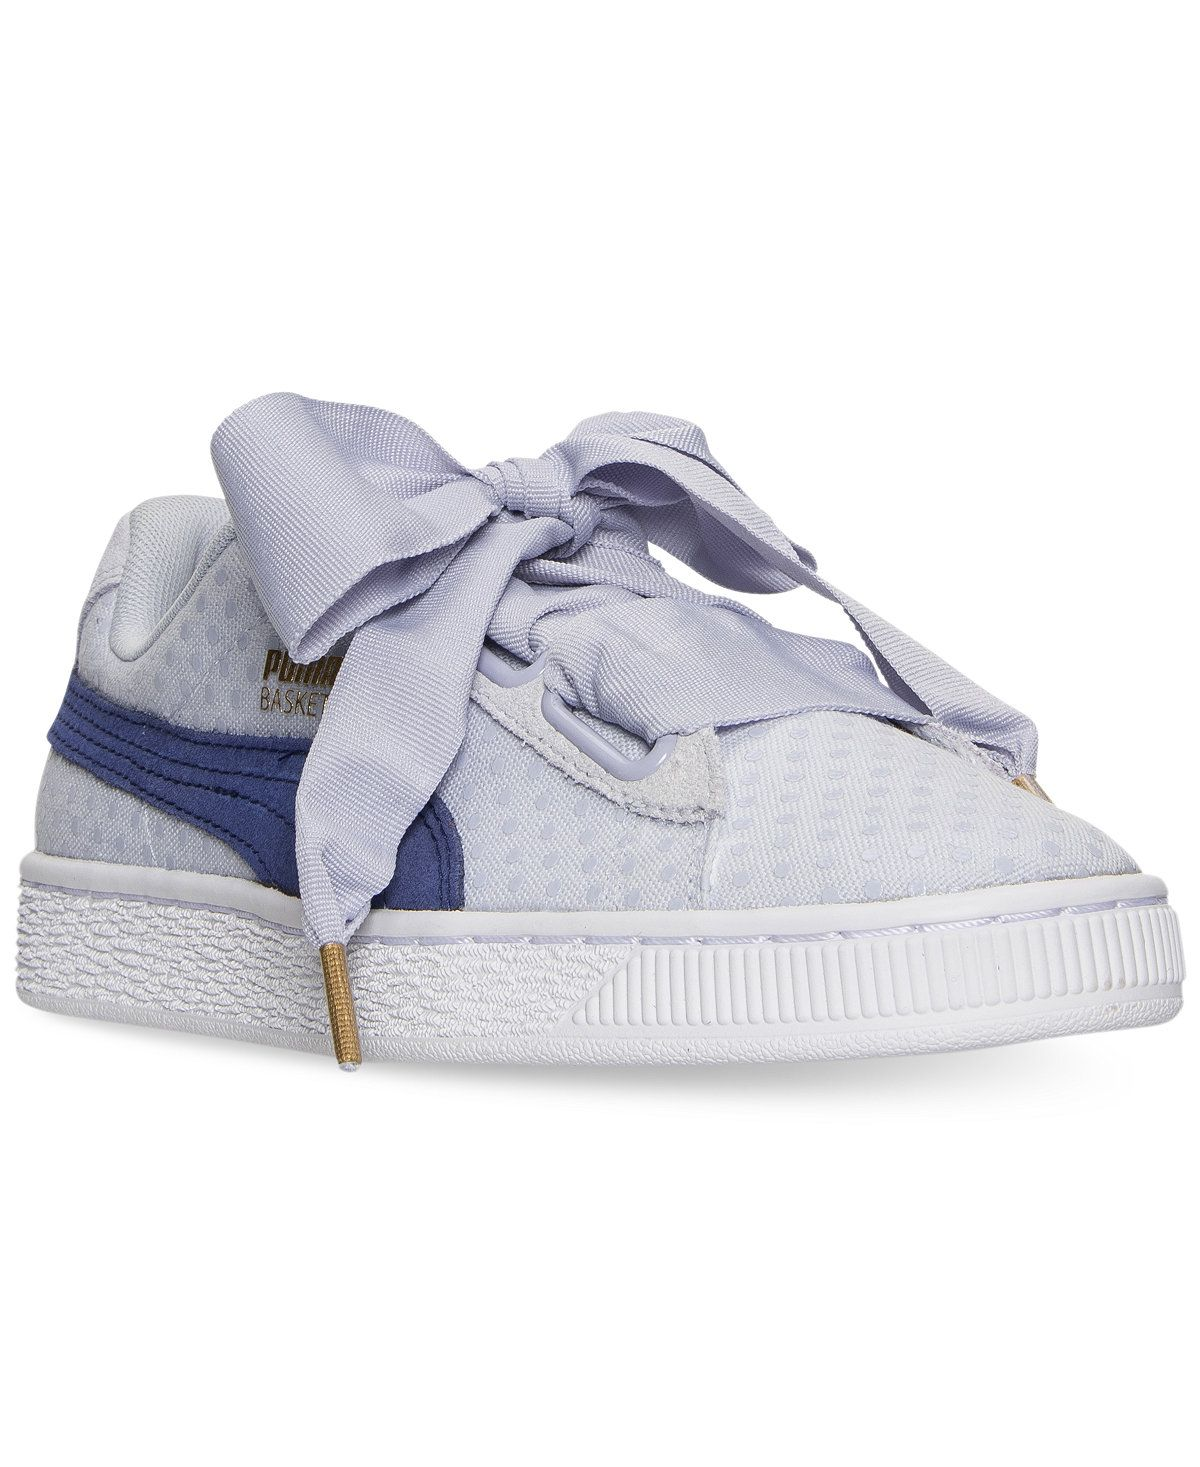 a5382e6ececd6 Puma Women s Basket Heart Denim Casual Sneakers from Finish Line - Finish  Line Athletic Sneakers - Shoes - Macy s